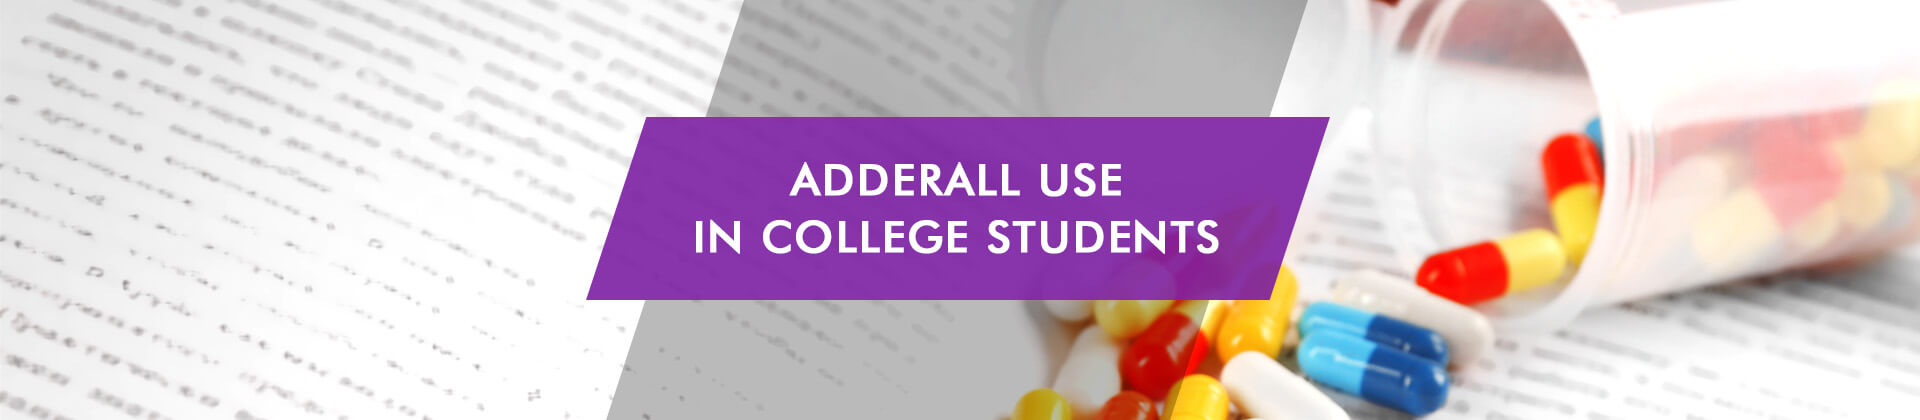 Adderall Use in College Students pils on the book